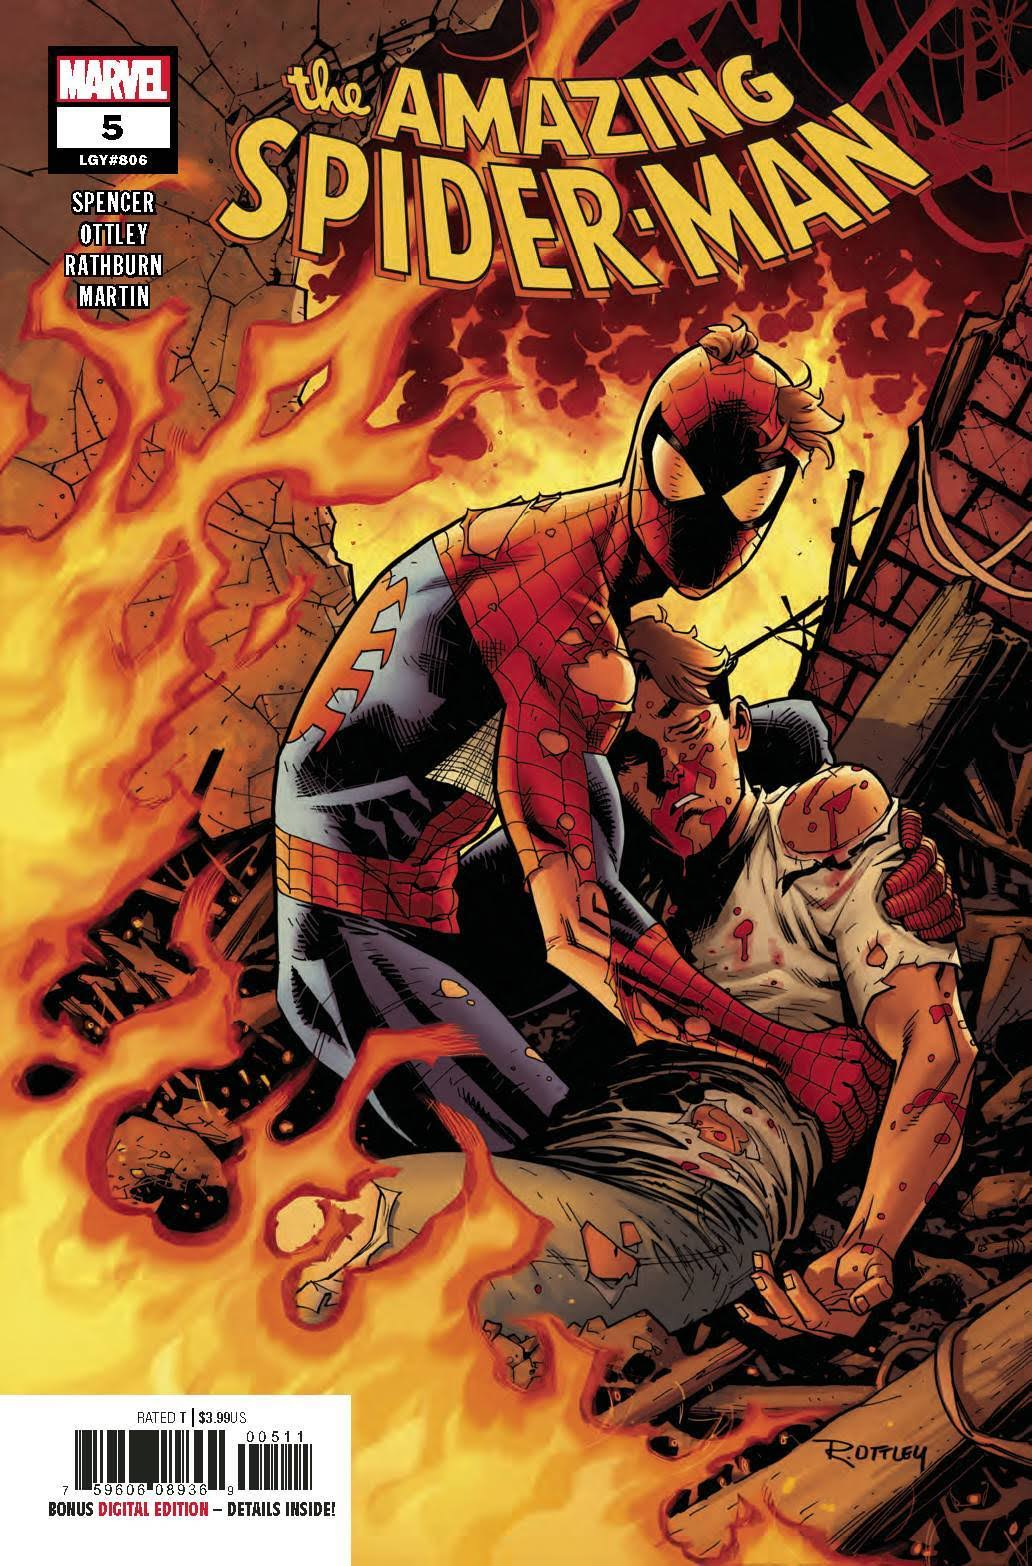 Spider-man #1 - Marvel Comics